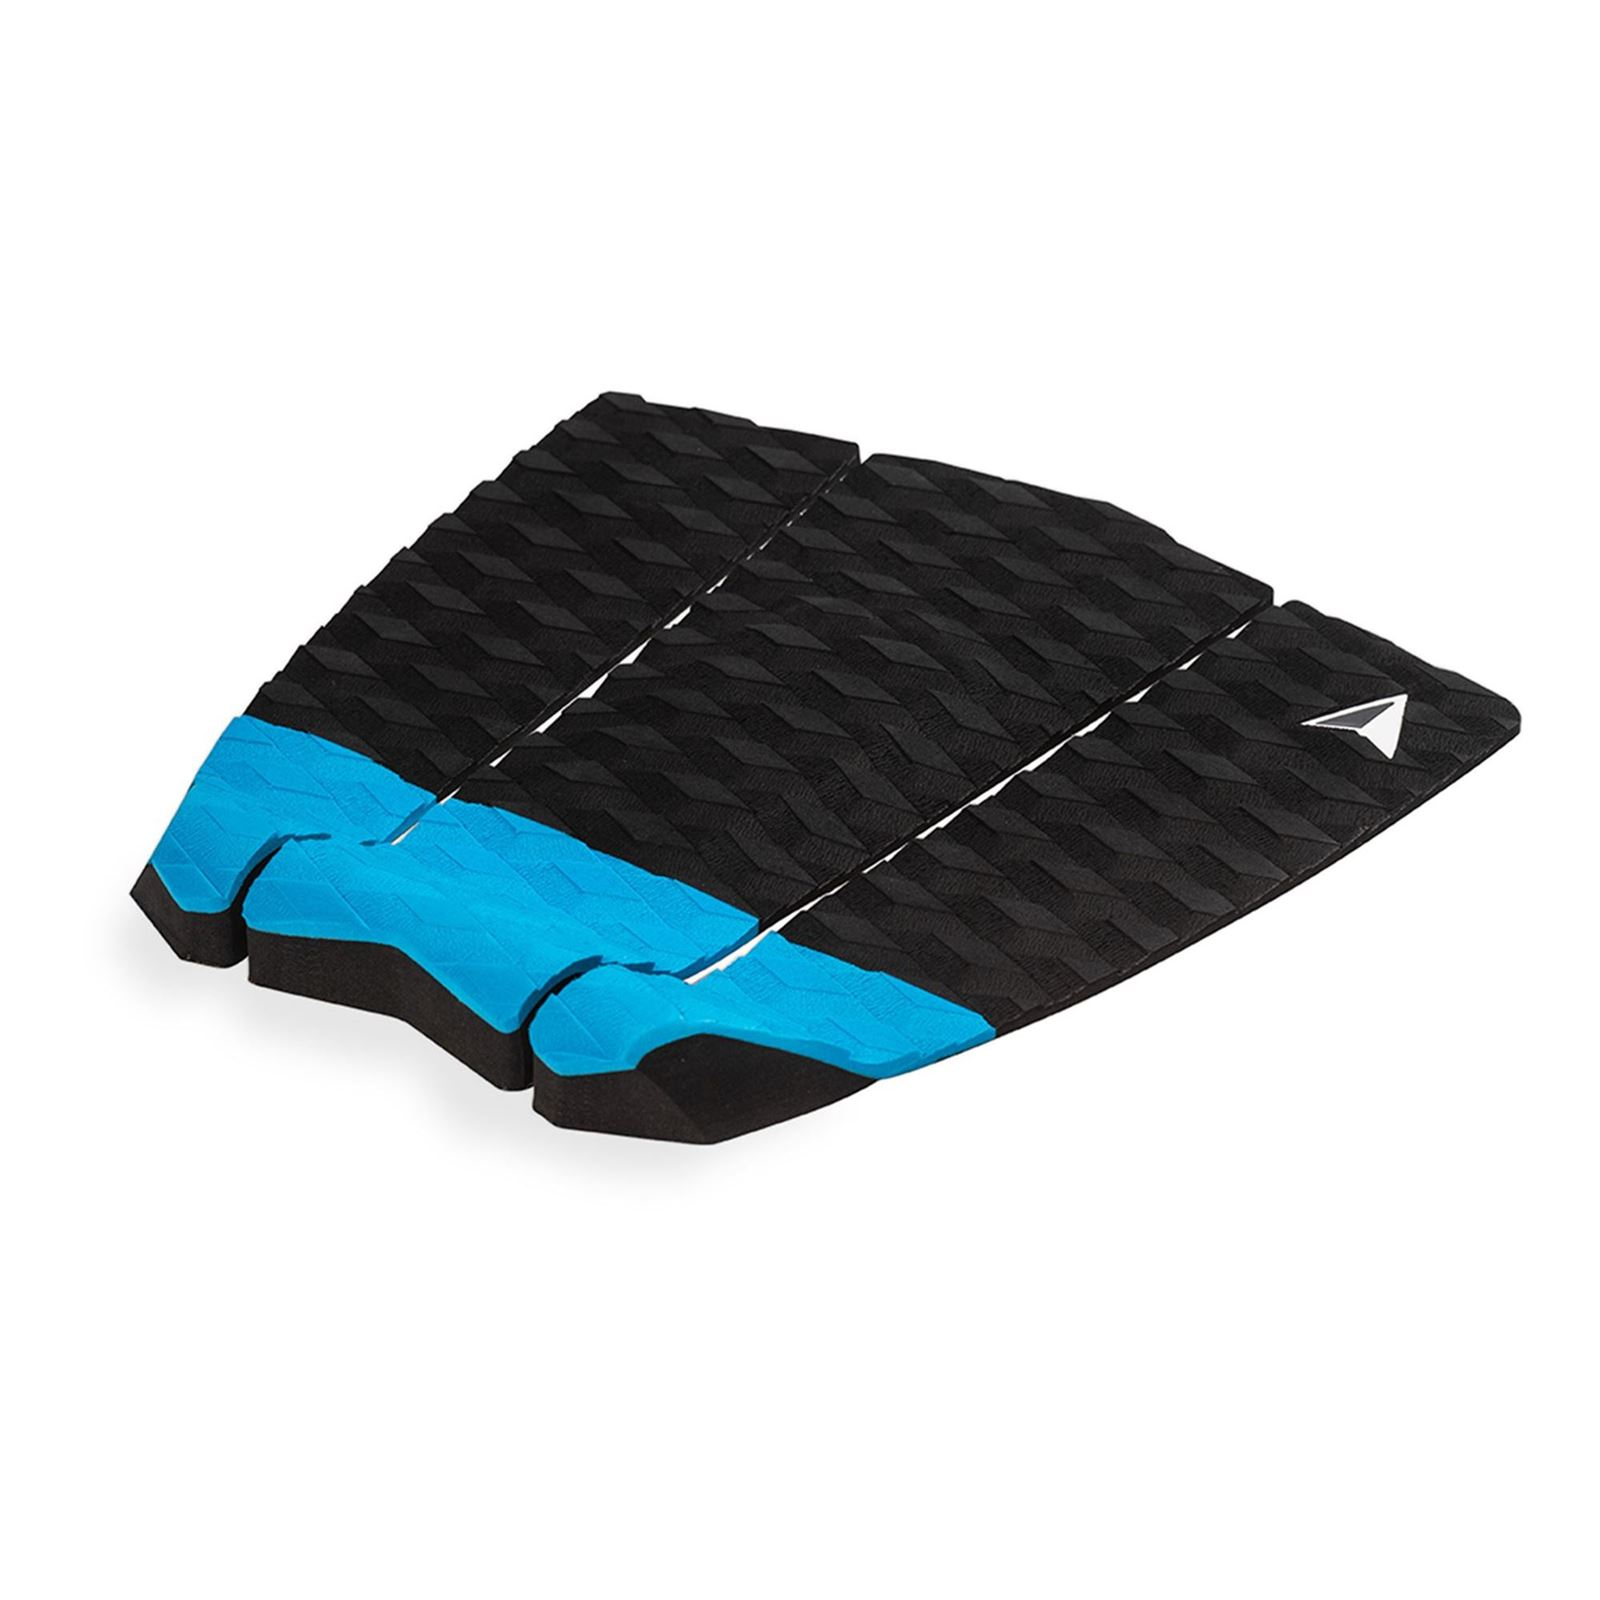 ROAM Footpad Deck Grip Traction Pad 3-tlg Blau